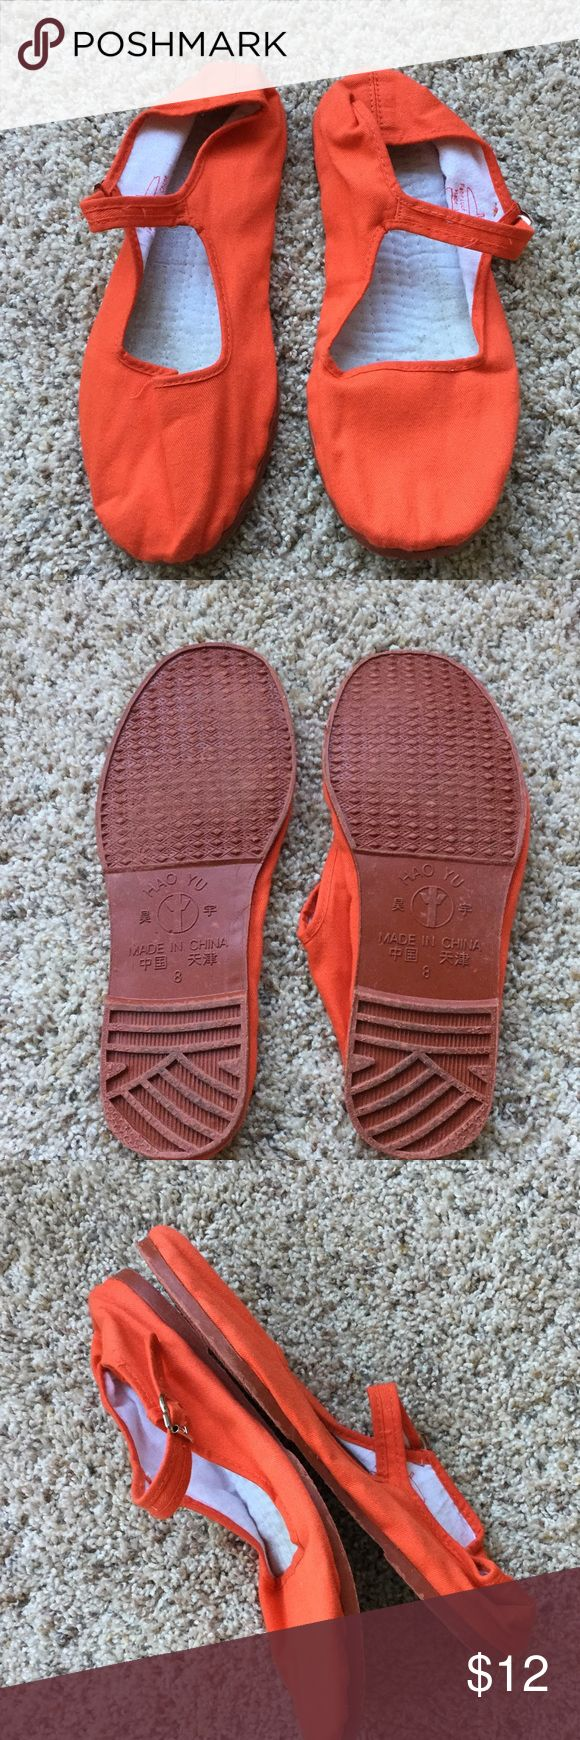 Hao Yu - Orange flats Hao Yu brand - color: dark orange - size: 8 - good condition! Fast shipping. Hao Yu Shoes Flats & Loafers